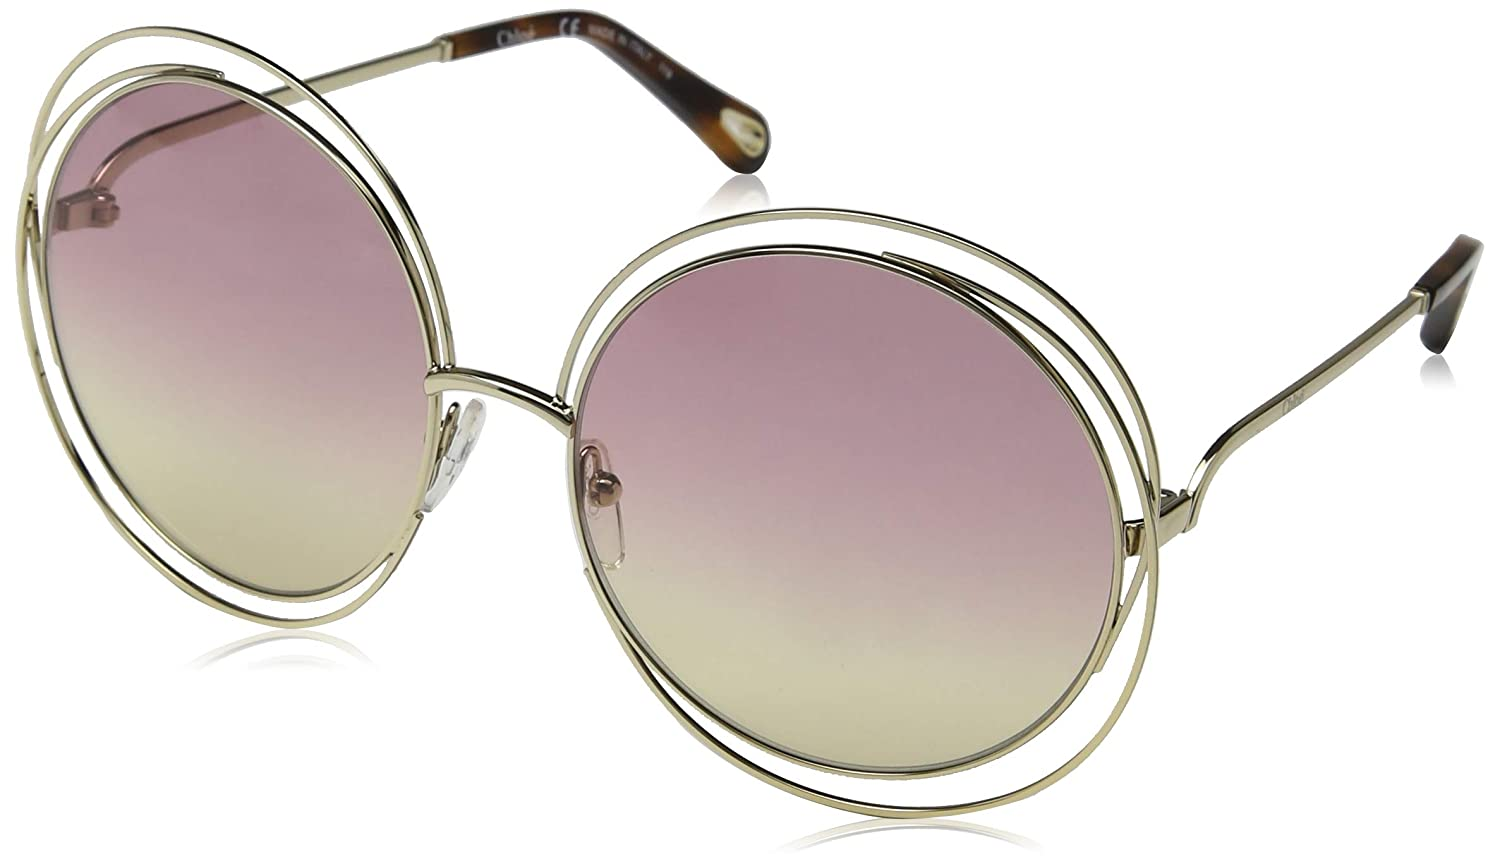 13bddc9106 Sunglasses CHLOE CE 114 SD 702 GOLD HAVANA GRAD ROSE HONEY LE at Amazon  Men s Clothing store